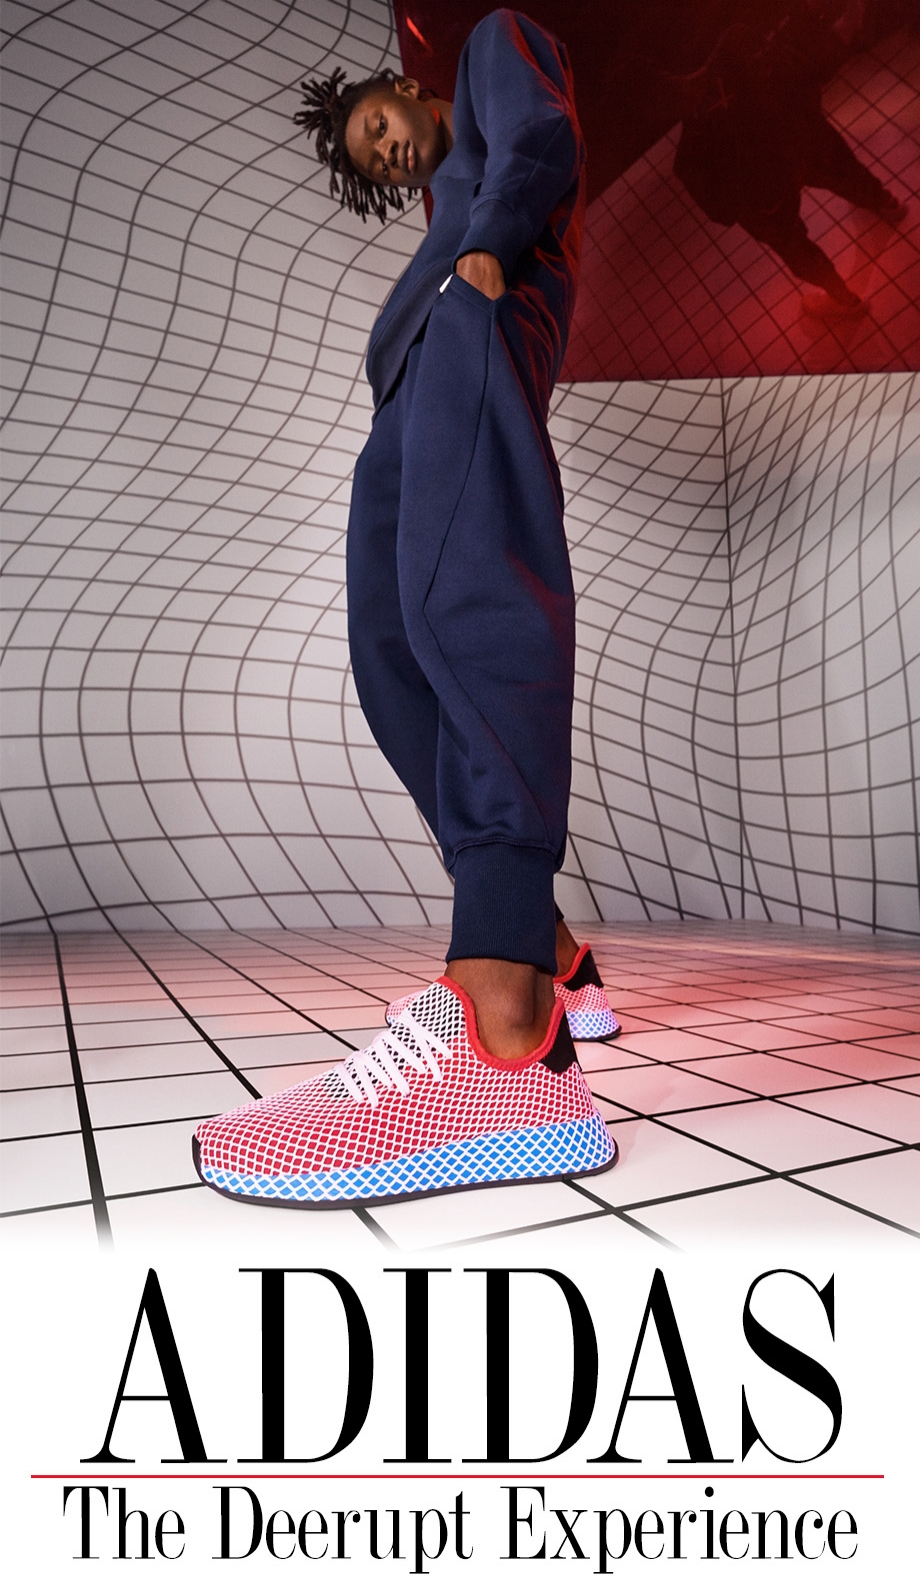 item_deerupt4.jpg